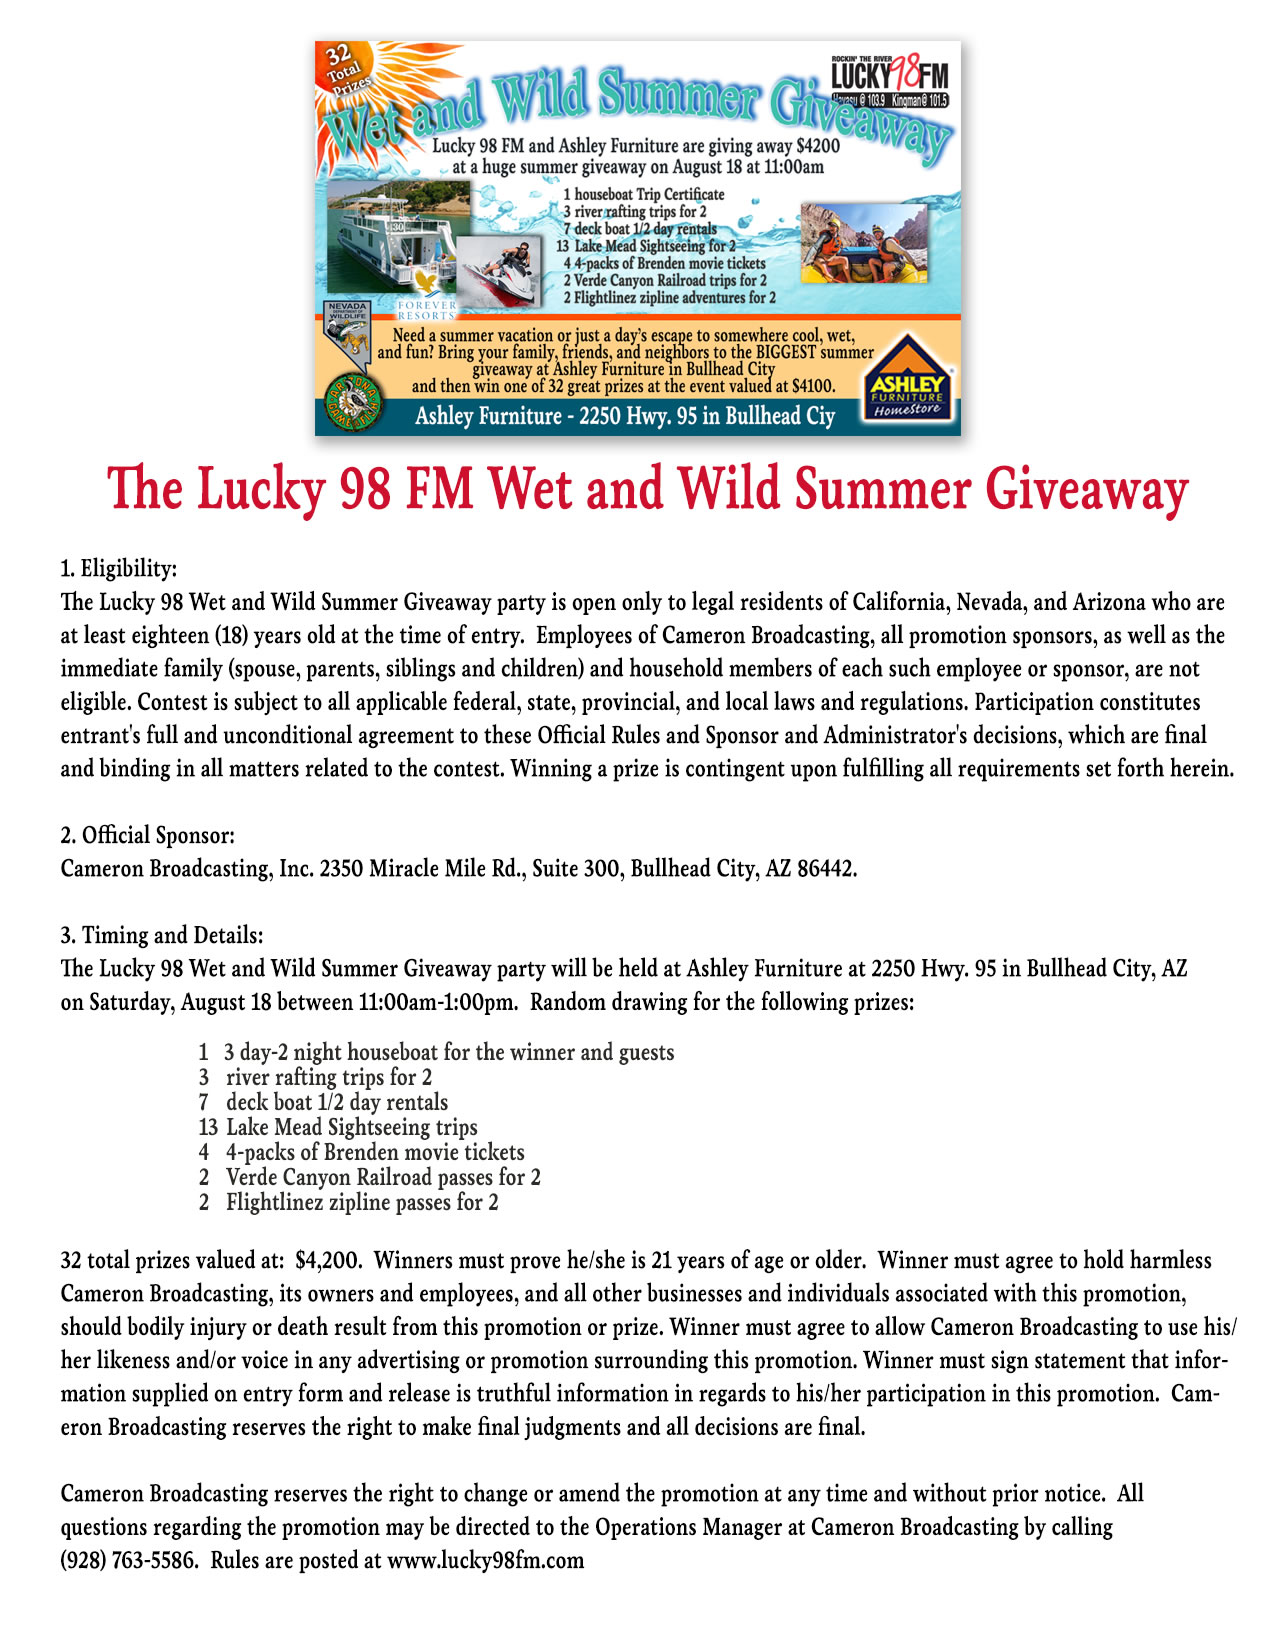 The Lucky 98 FM Wet and Wild Summer Giveaway